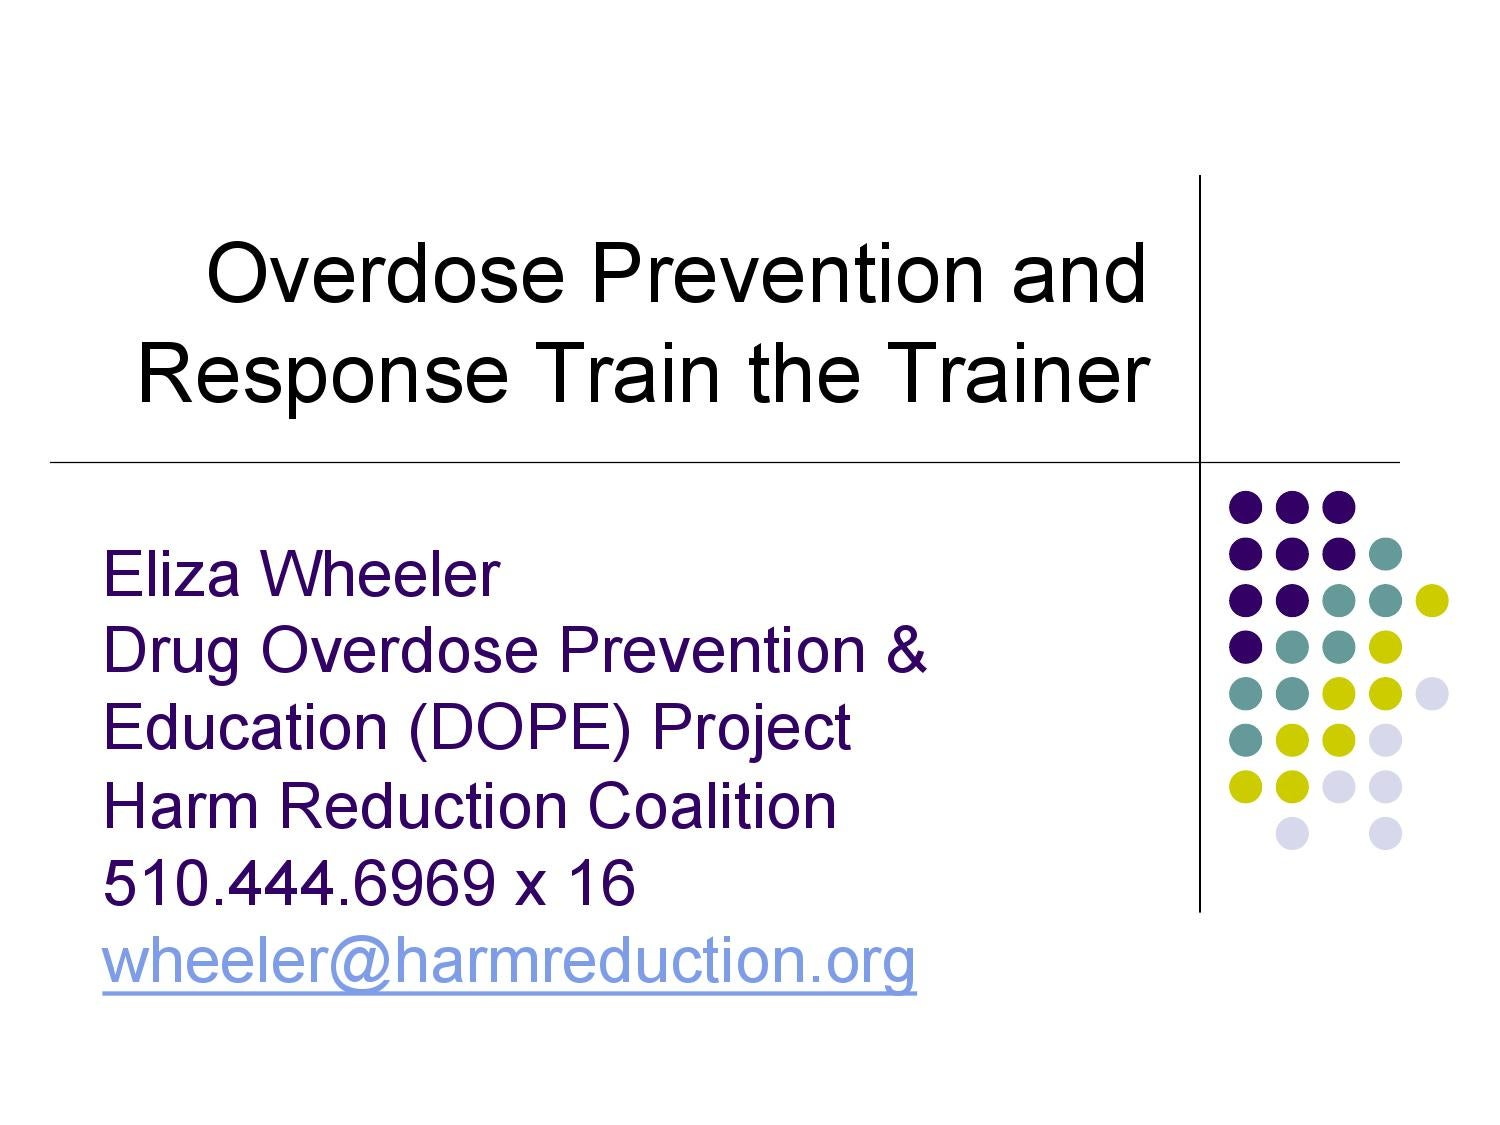 Overdose Prevention and Response Train the Trainer by Harm